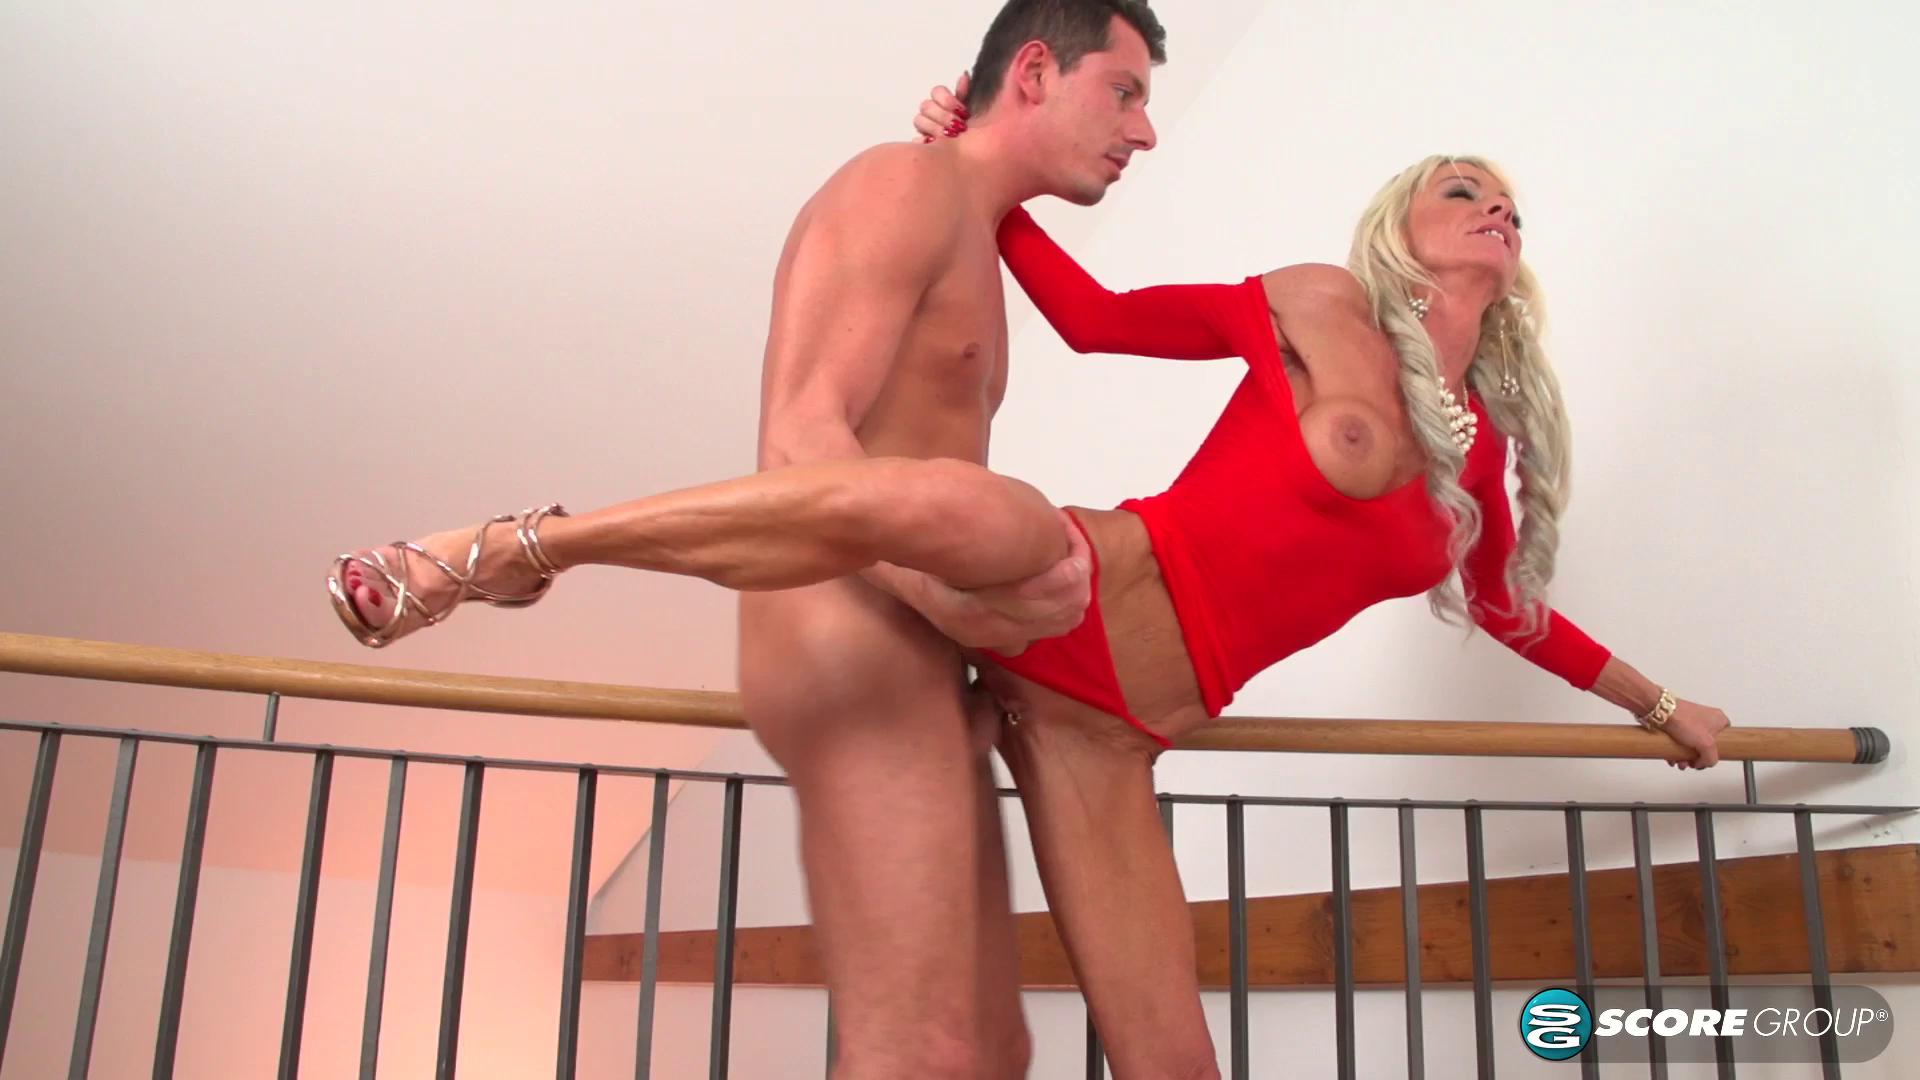 PornMegaLoad – Alexis Starr Alexis And A Younger Guy Make Some Noise